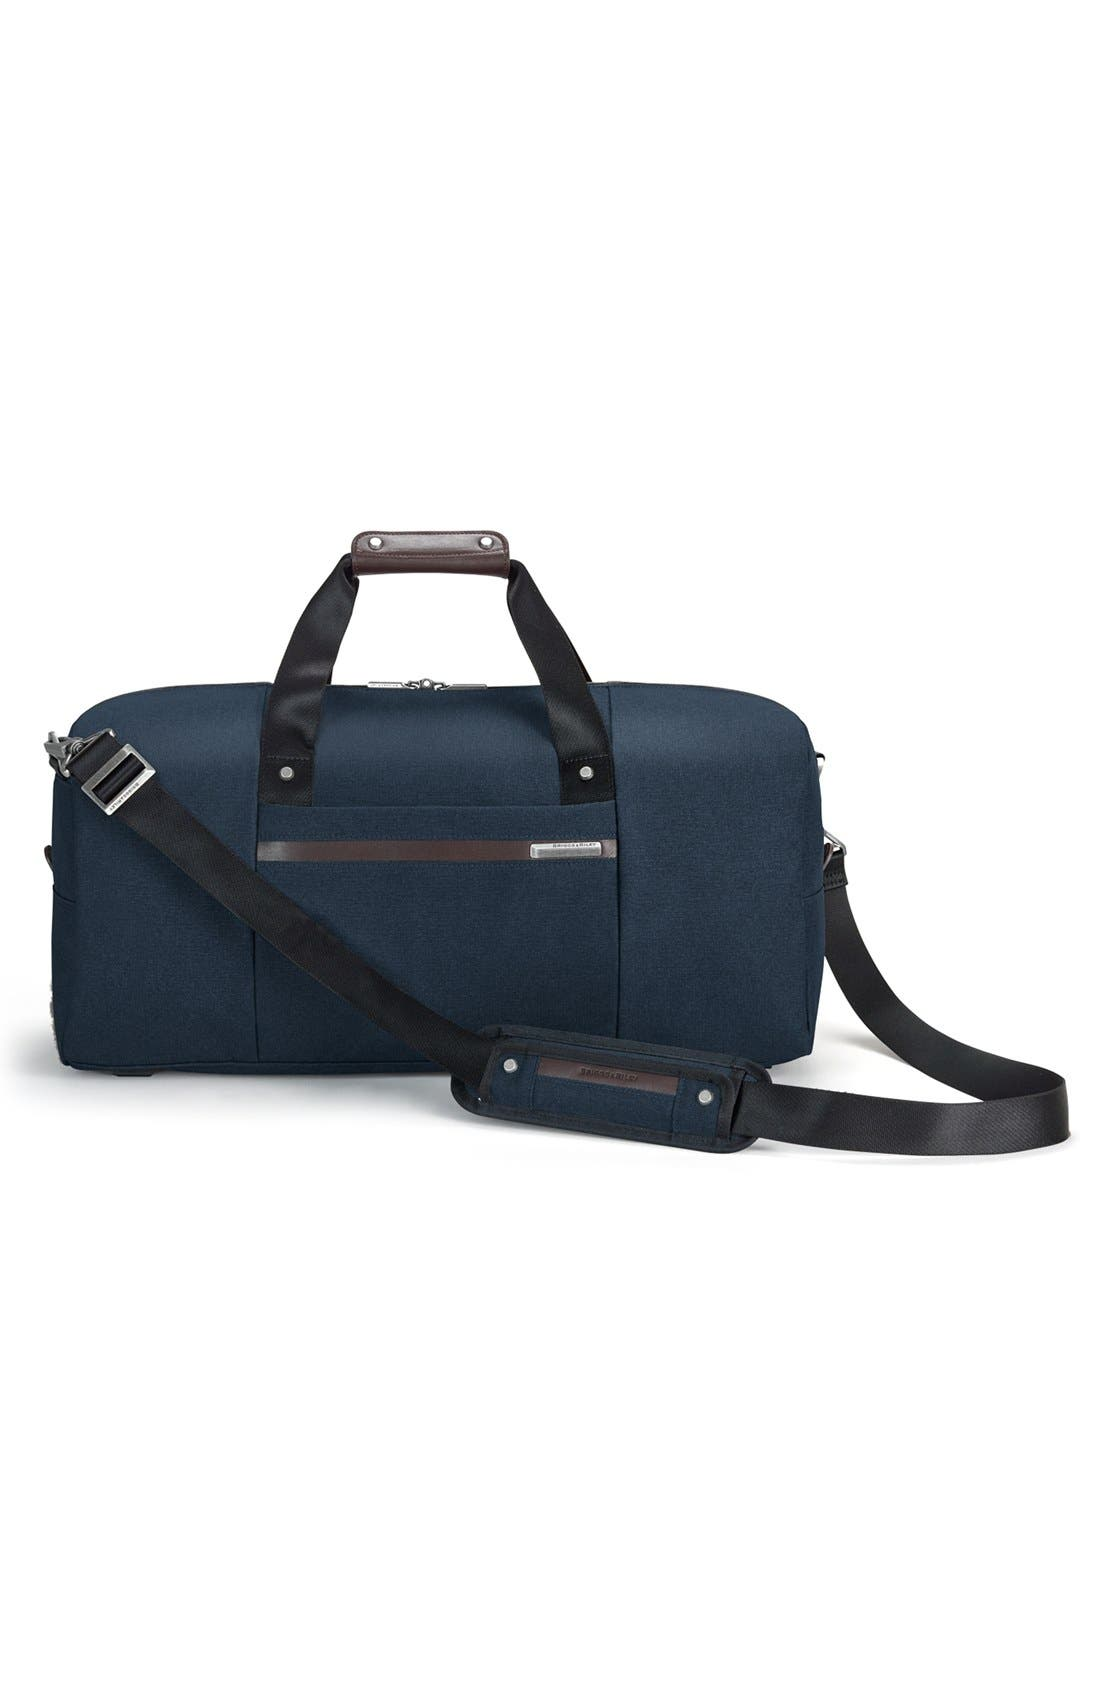 Kinzie Street - Simple Duffel Bag,                             Alternate thumbnail 4, color,                             Navy Blue